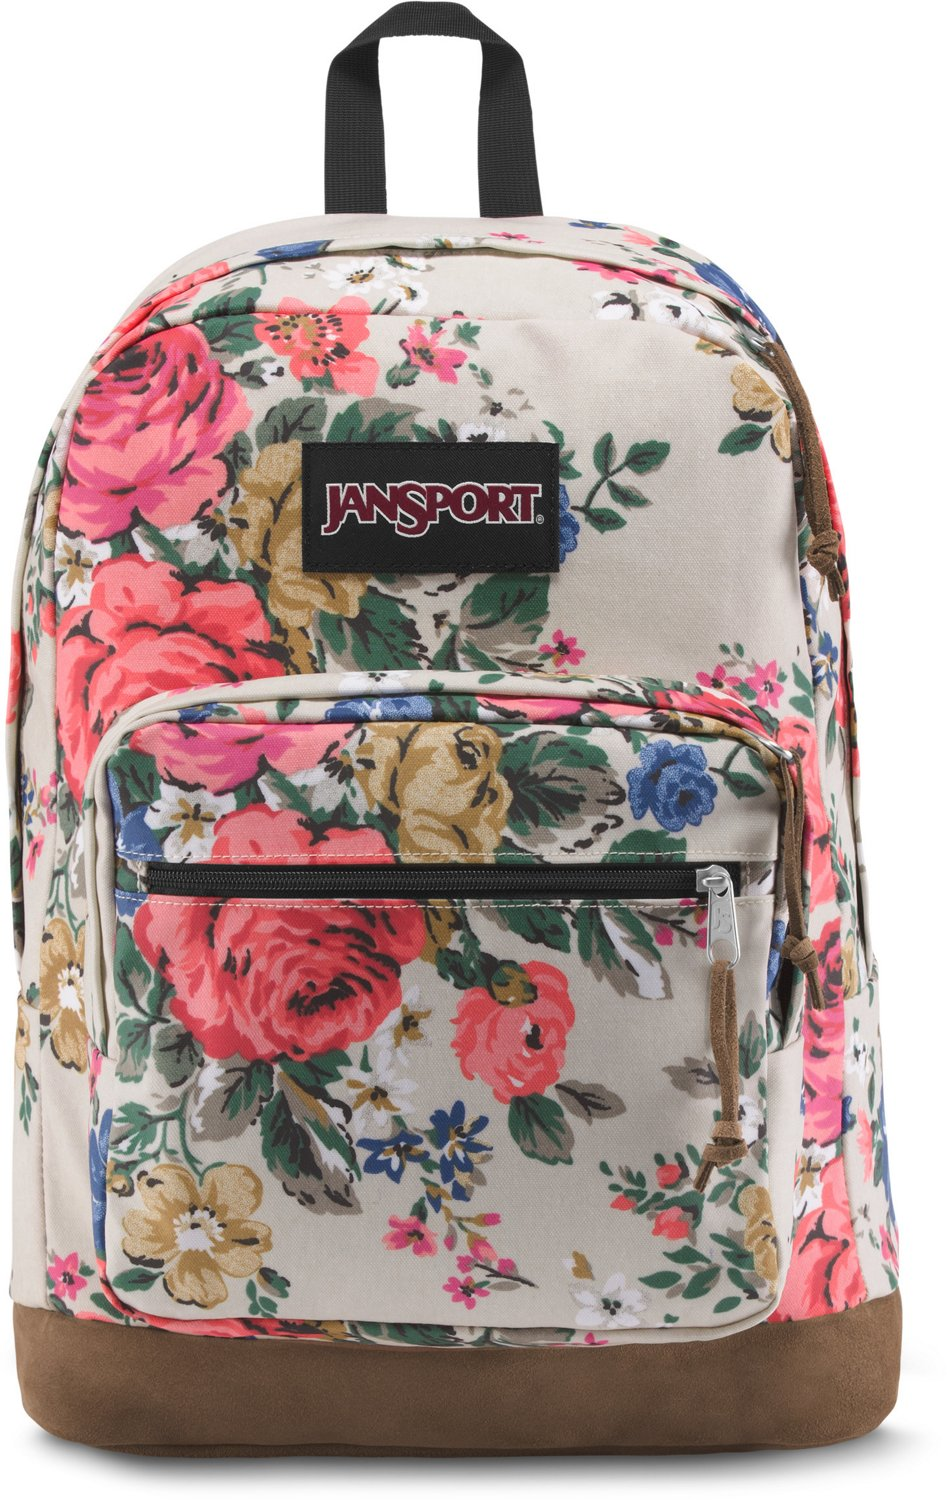 91a82a109ea Display product reviews for JanSport Disney Right Pack Expressions Backpack